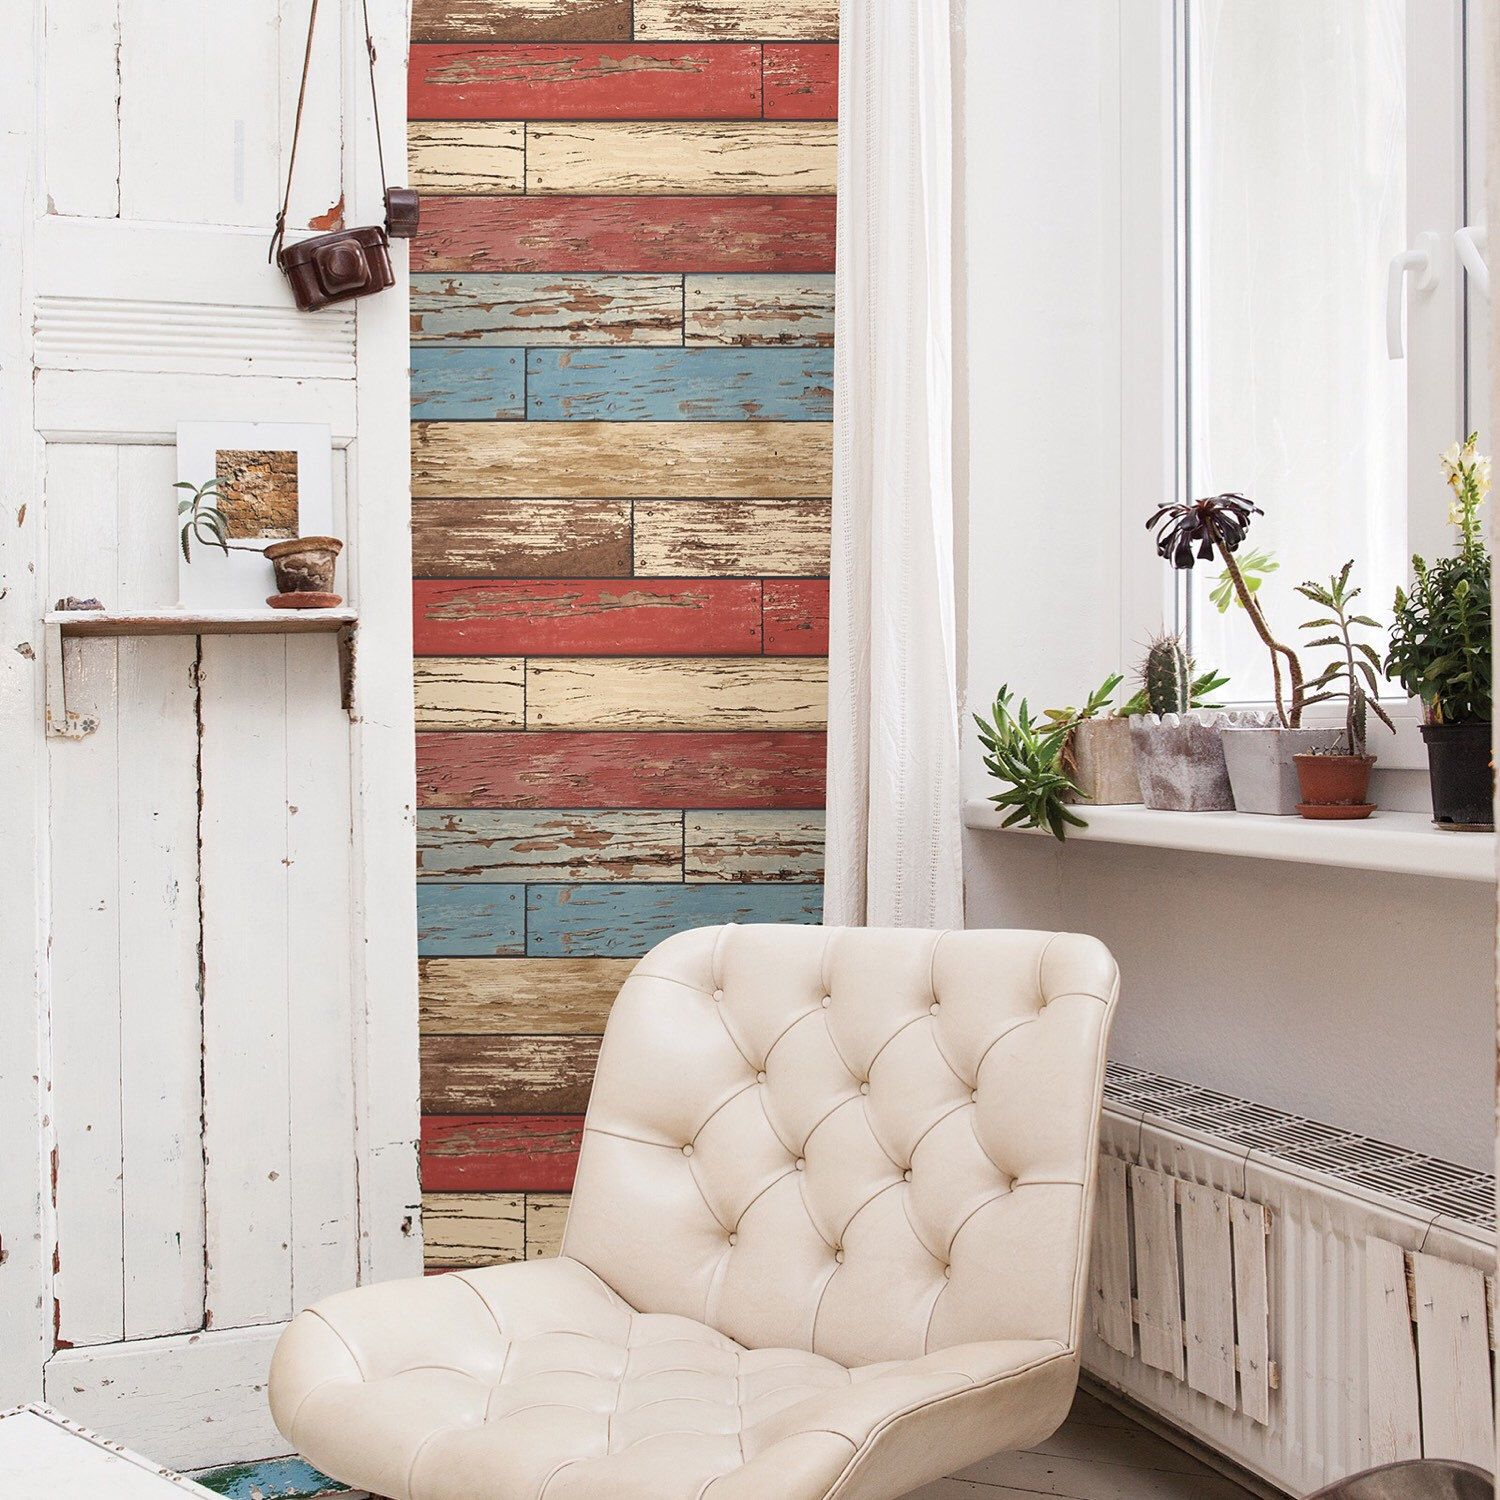 A little rustic wood with red wallpaper on this Christmas weekend